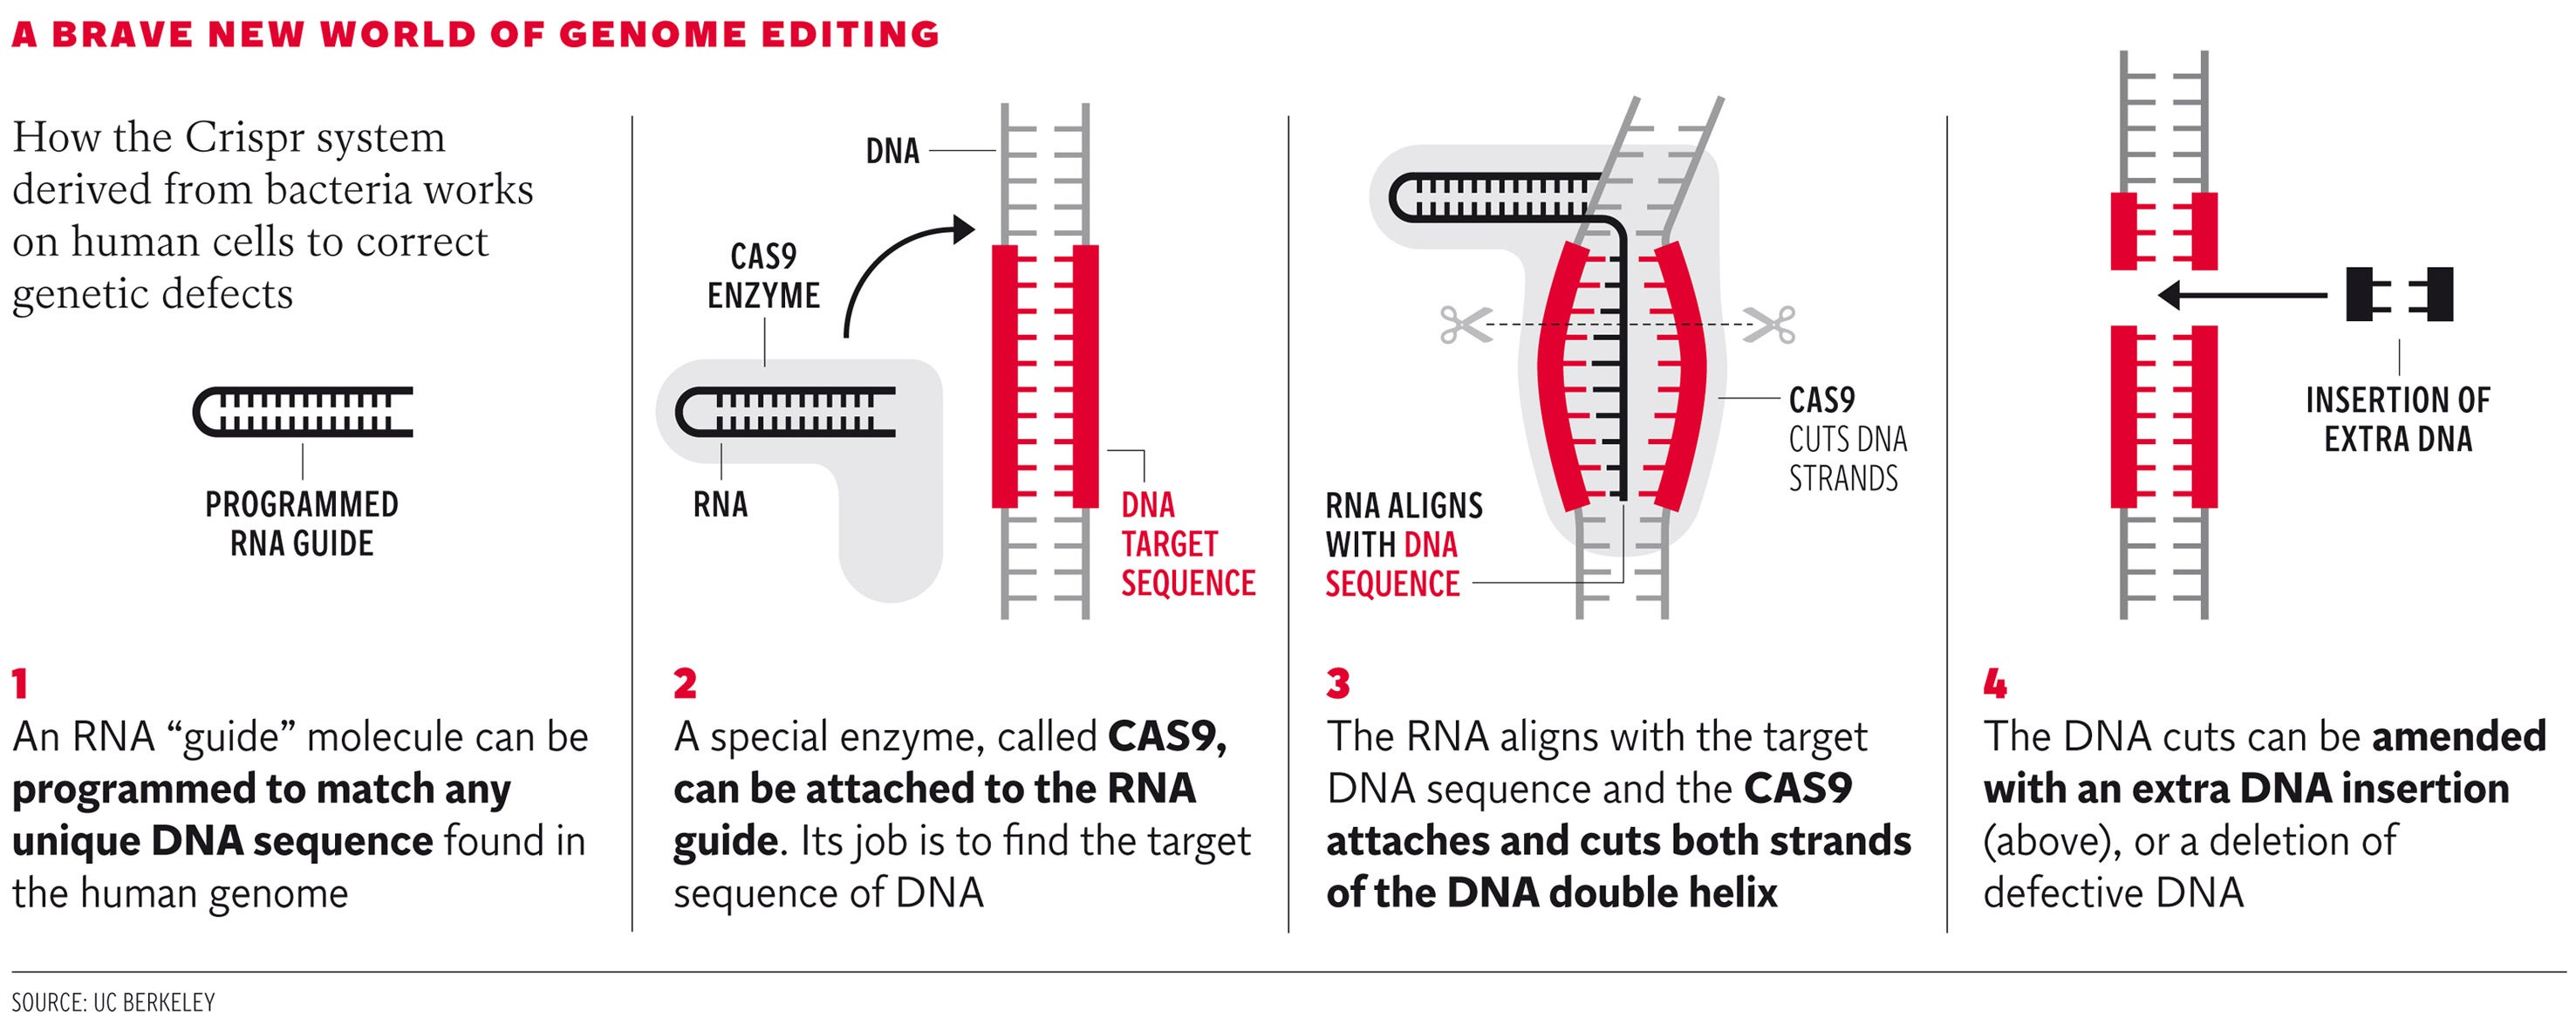 Exclusive: 'Jaw-dropping' breakthrough hailed as landmark in fight against hereditary diseases as Crispr technique heralds genetic revolution